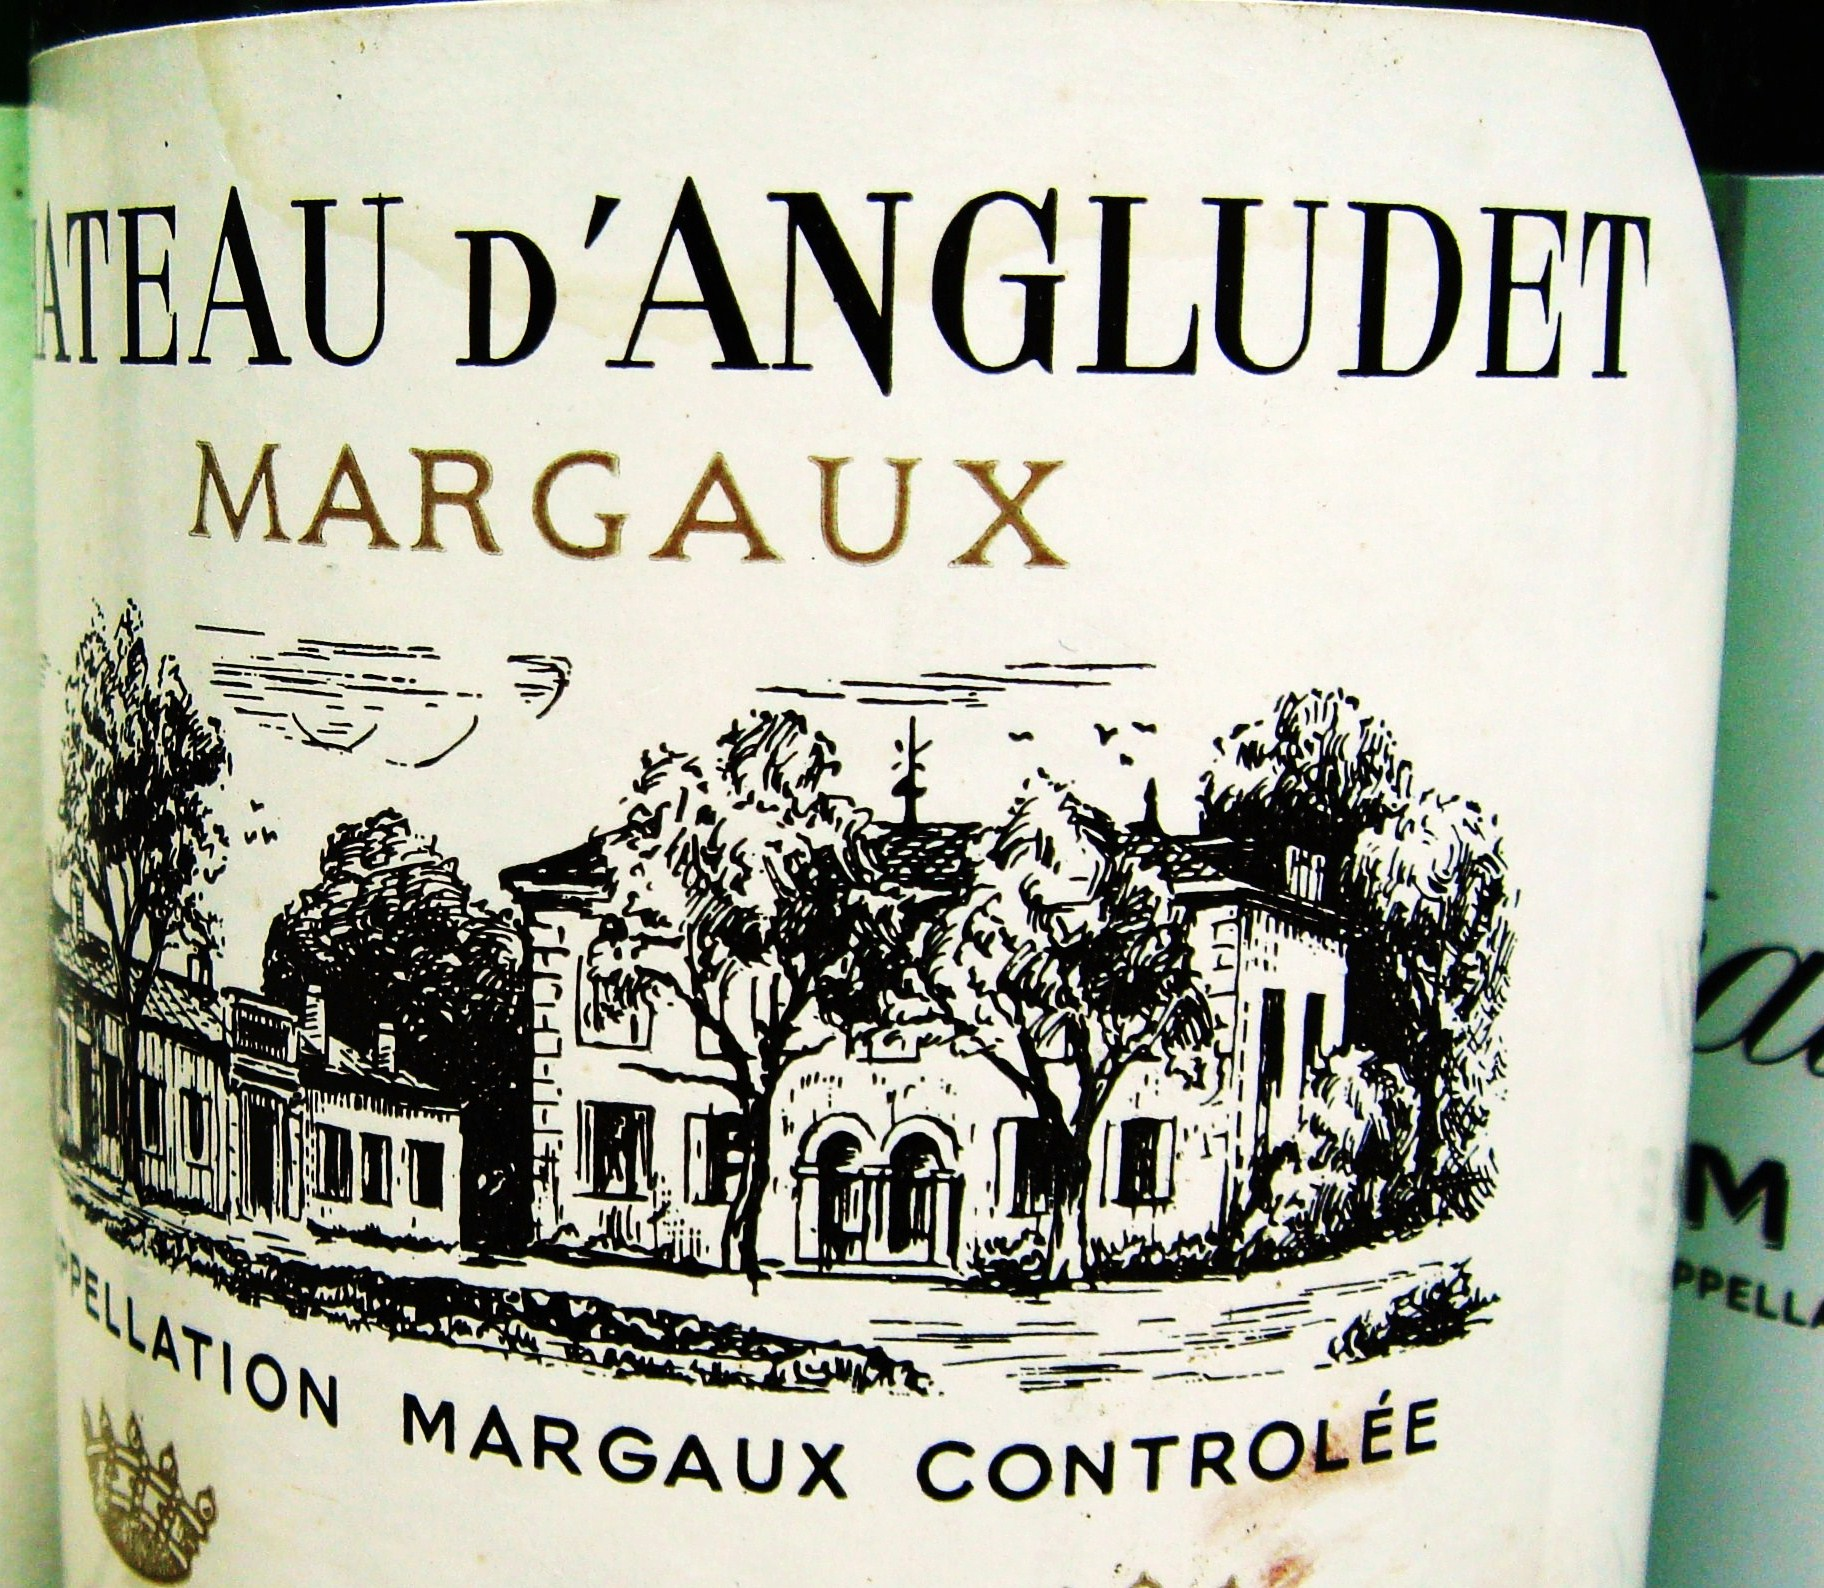 Chateau d'Angludet - Copy